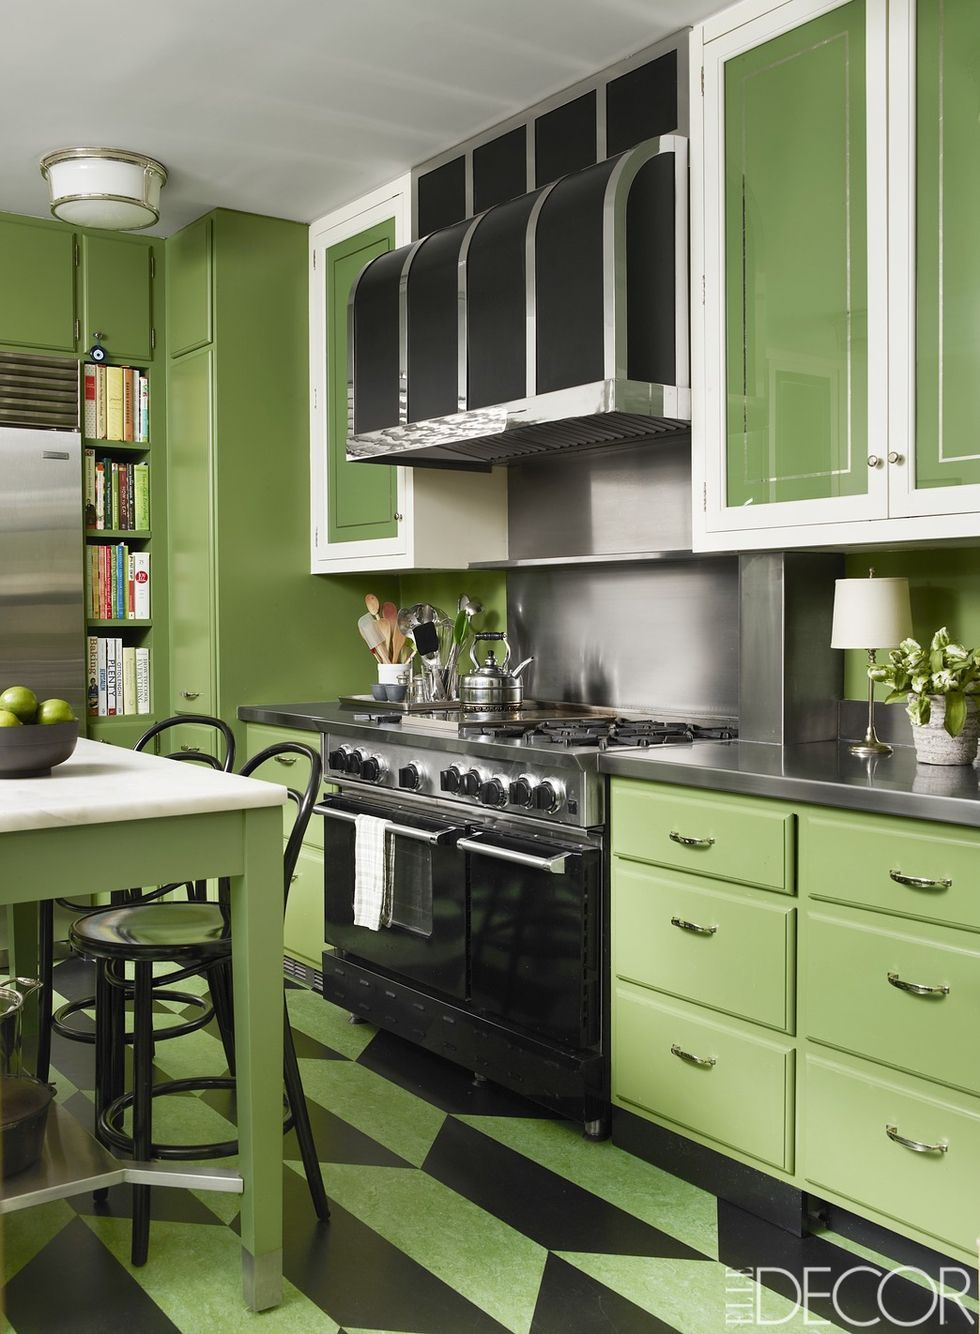 These Small Kitchens Have Major Style That You Re Sure To Love Kitchen Remodel Small Green Kitchen Designs Small Space Kitchen